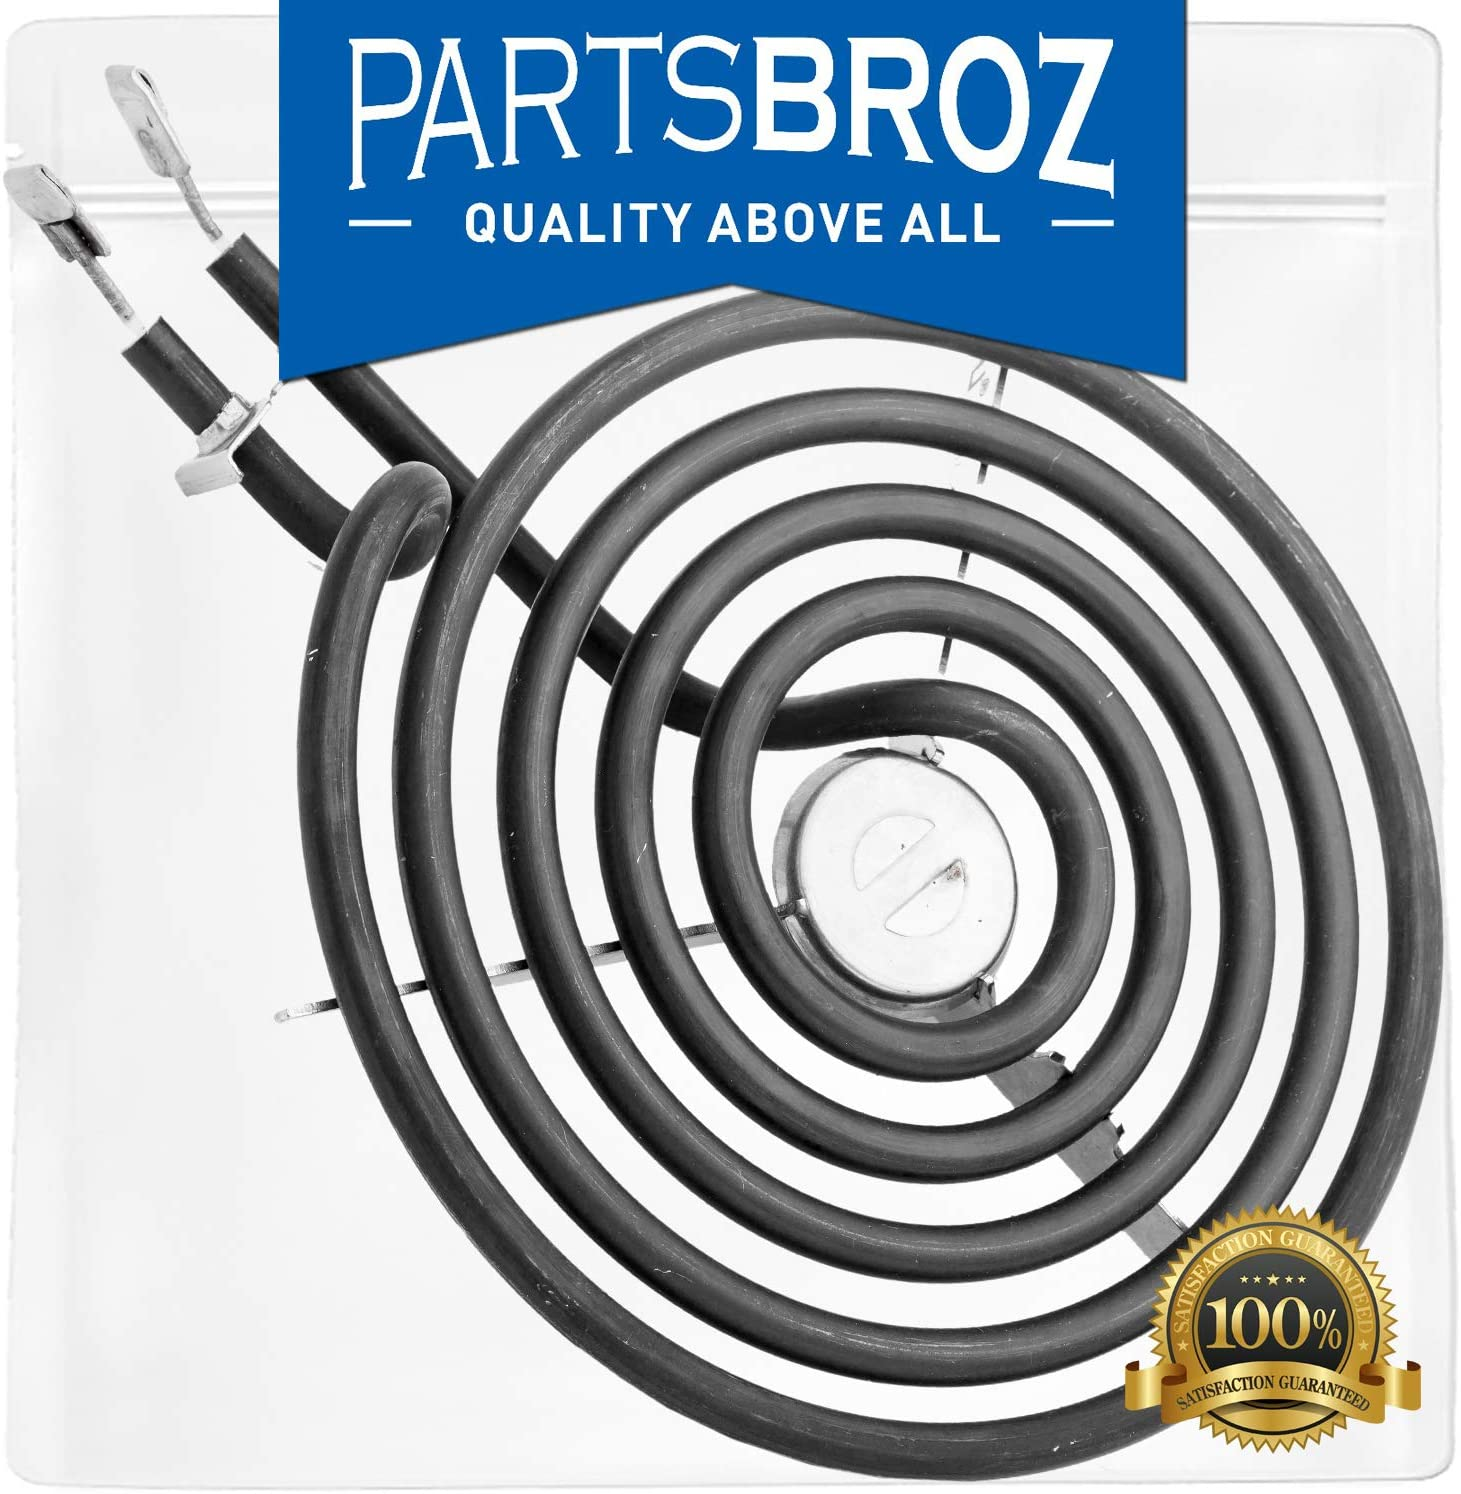 WB30M1 Surface Element 6-Inch Electric Range Burner by PartsBroz - Compatible with GE Ranges - Replaces AP2634727, AH243867, CH30M1, PS243867, WB30M0001, WB30X5129, YCH30M1